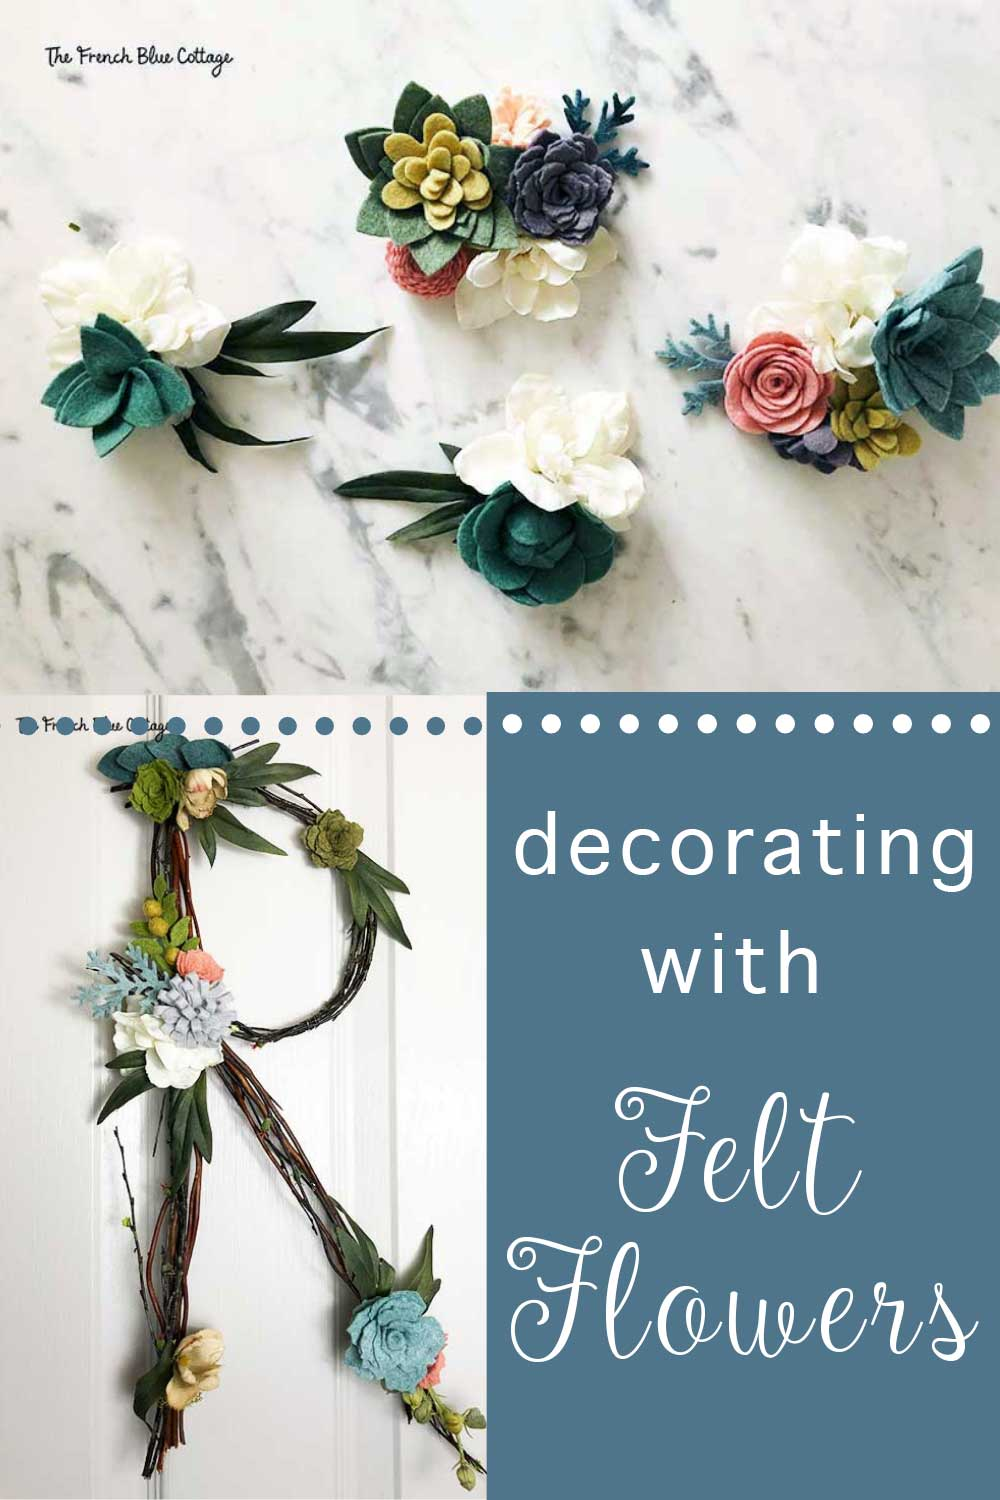 twig initials and decorating with felt flowers